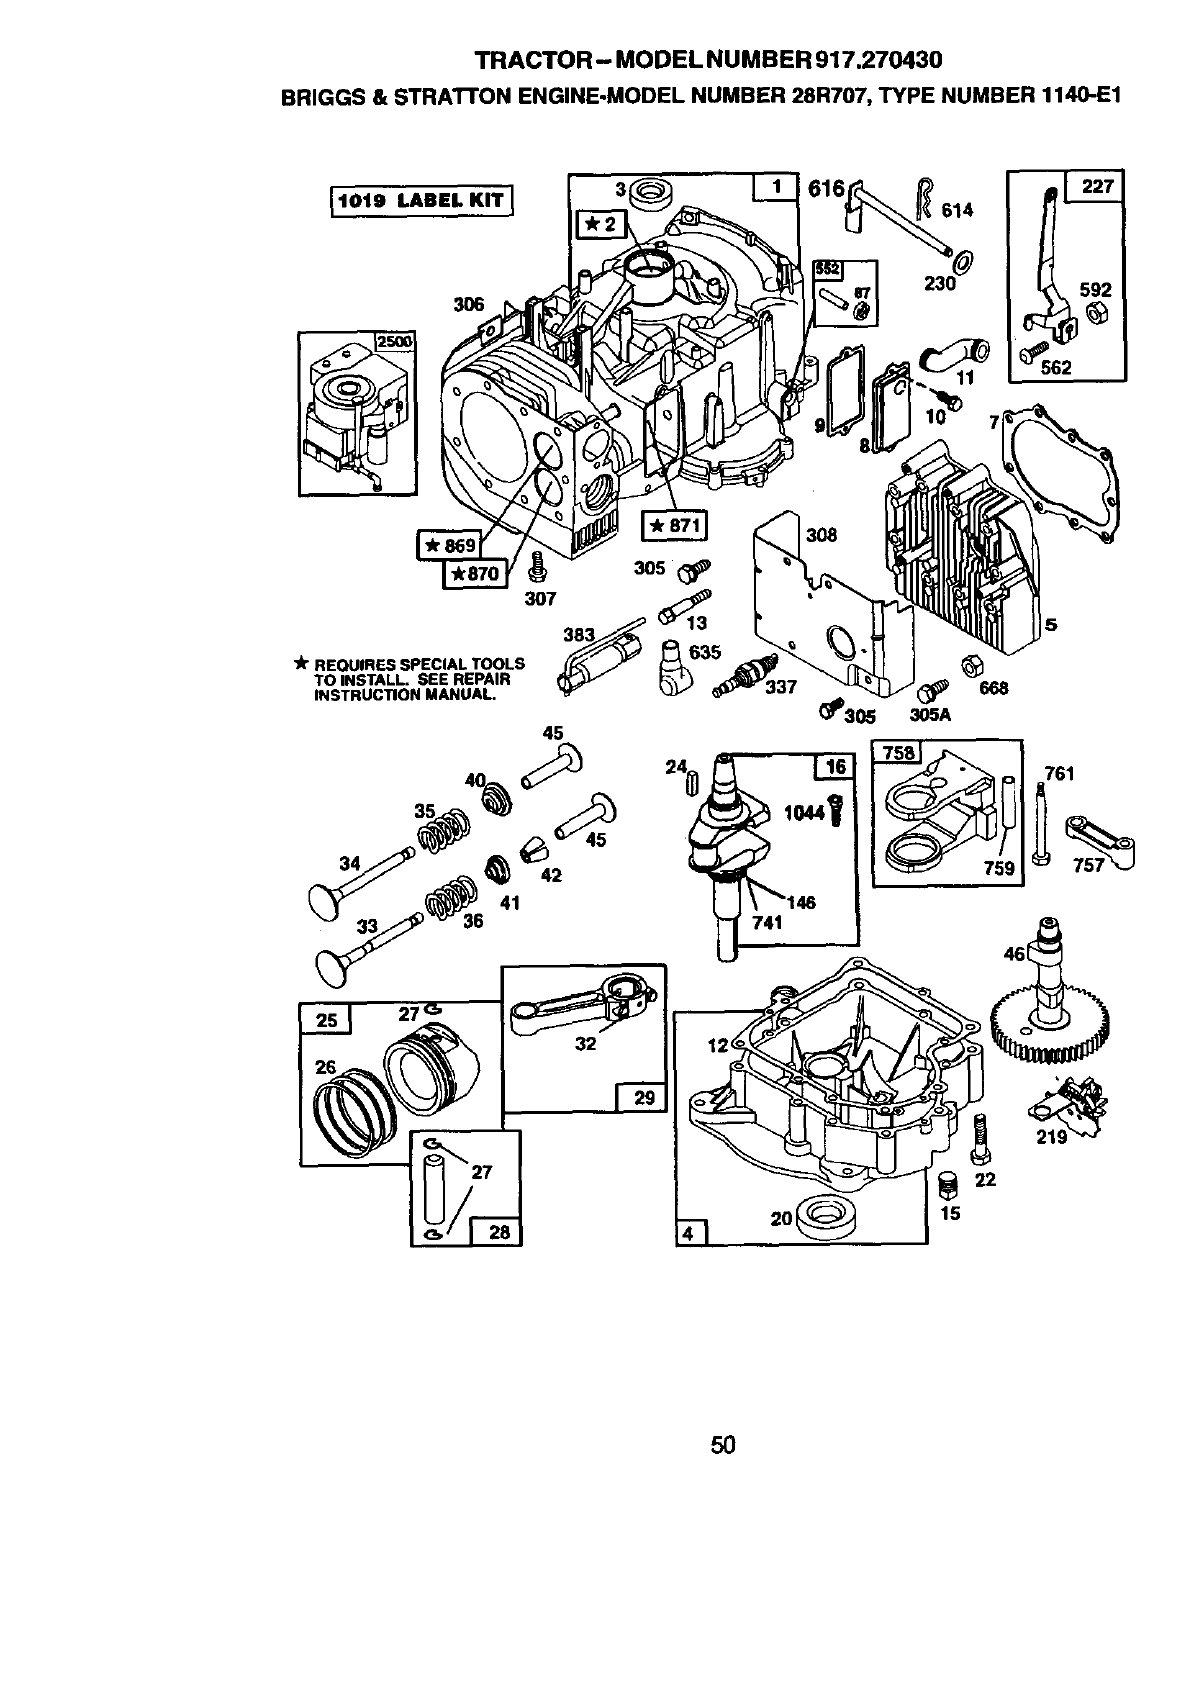 Craftsman 917270430 User Manual 13.5 HP 38 MOWER 5SPD LAWN